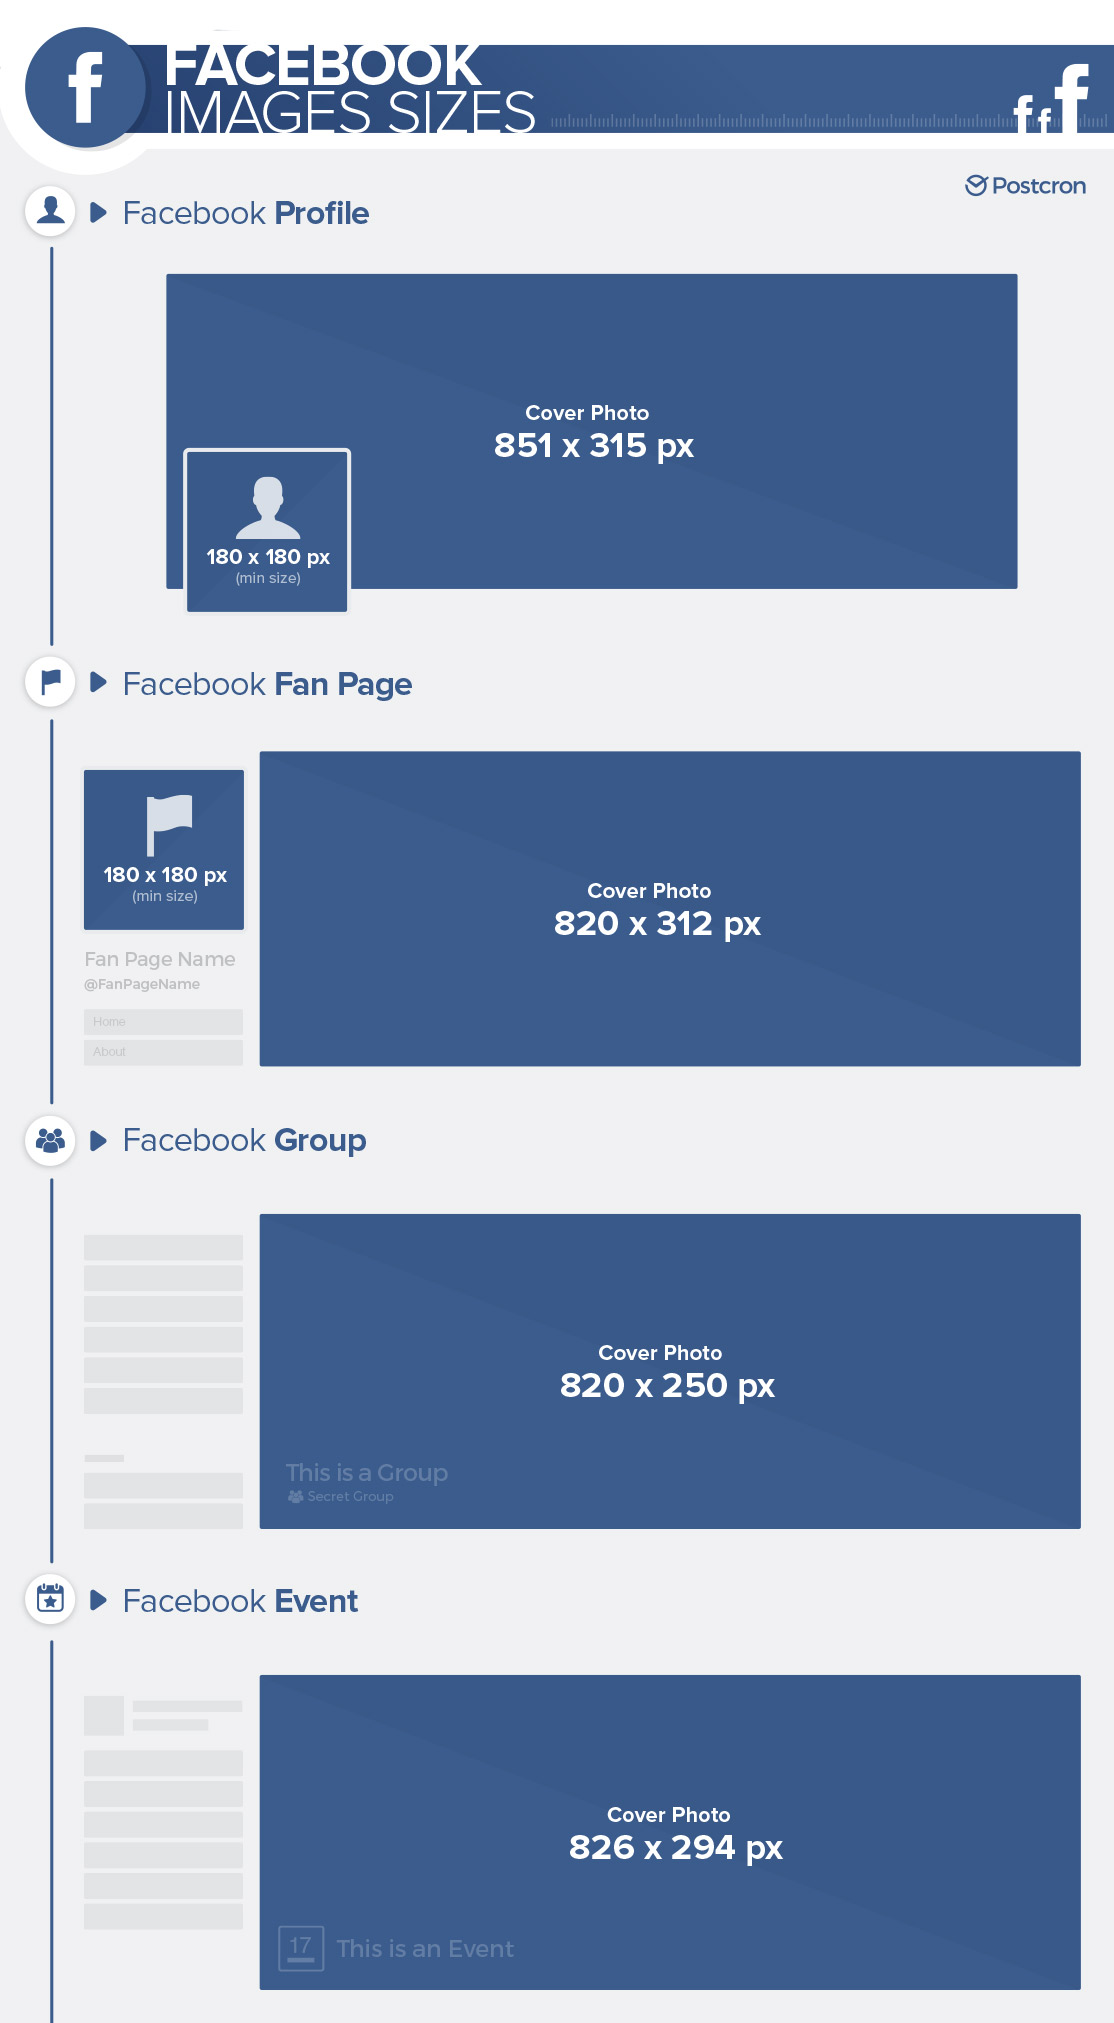 Facebook Covers Sizes (profile, page, group and event)